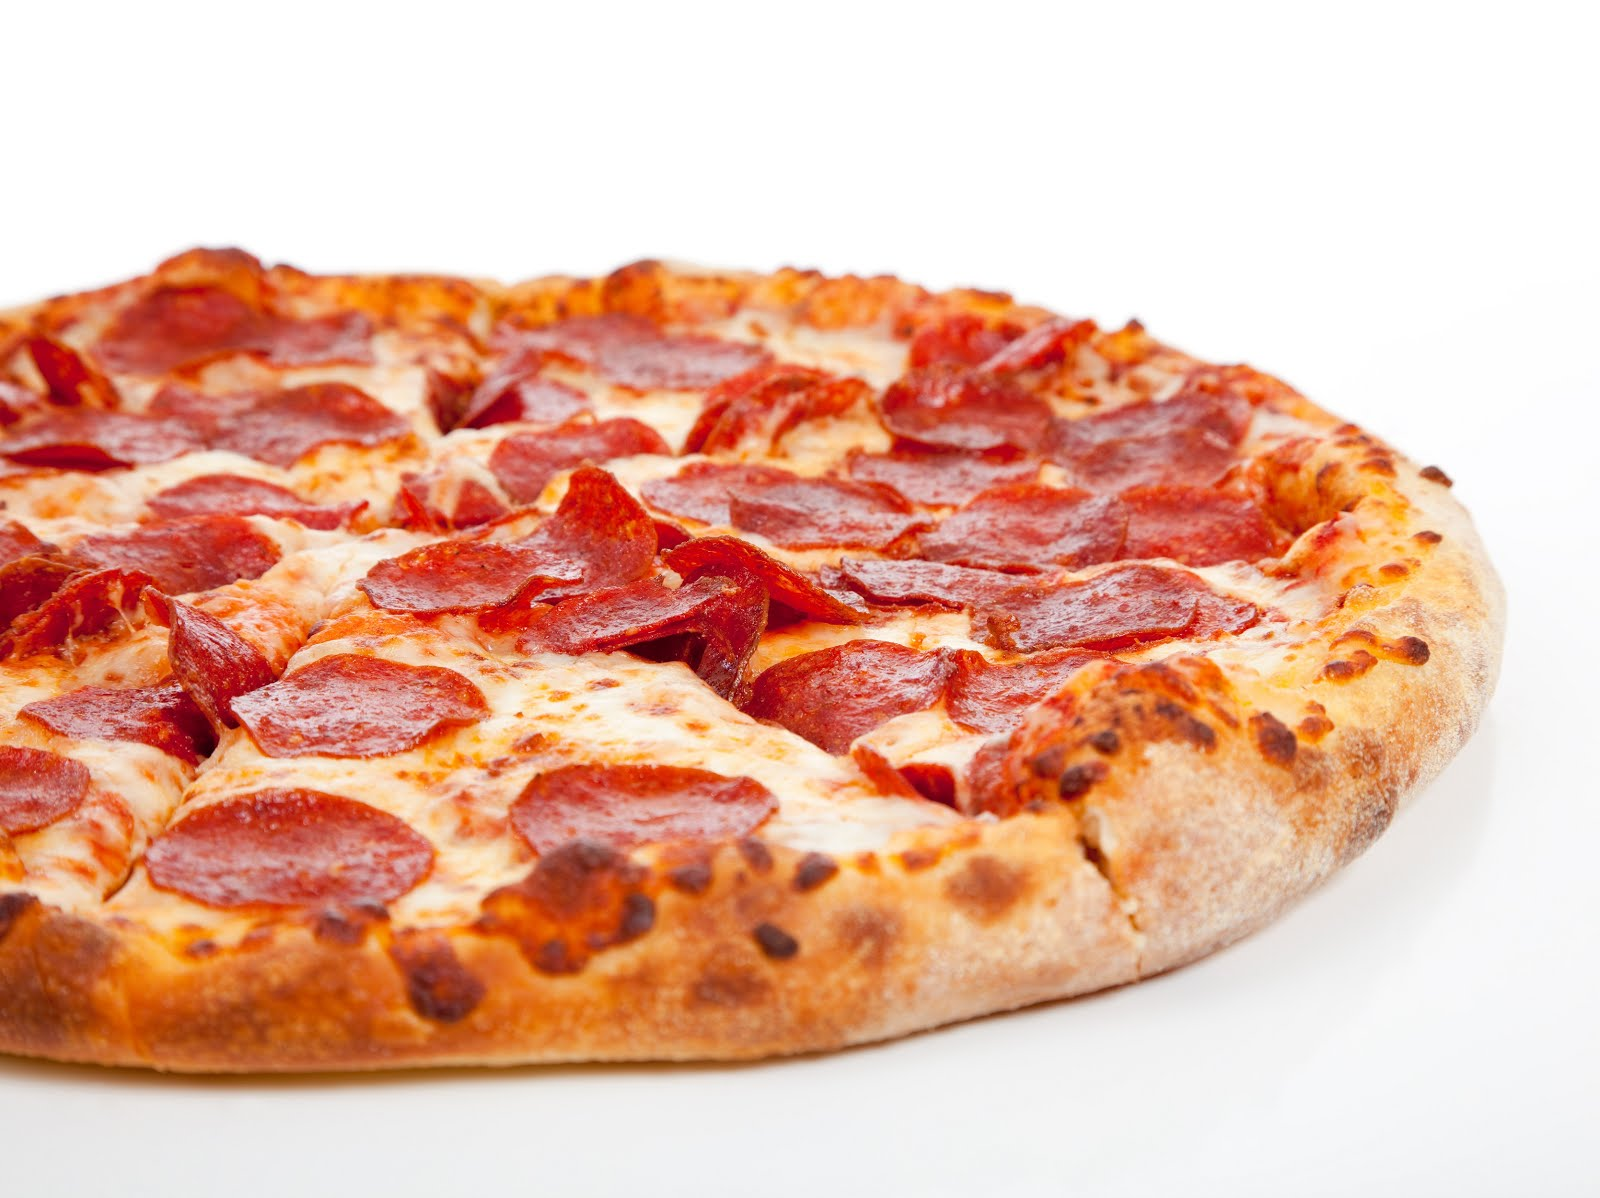 Everyone loves pizza, why not invest in a pizza franchise?